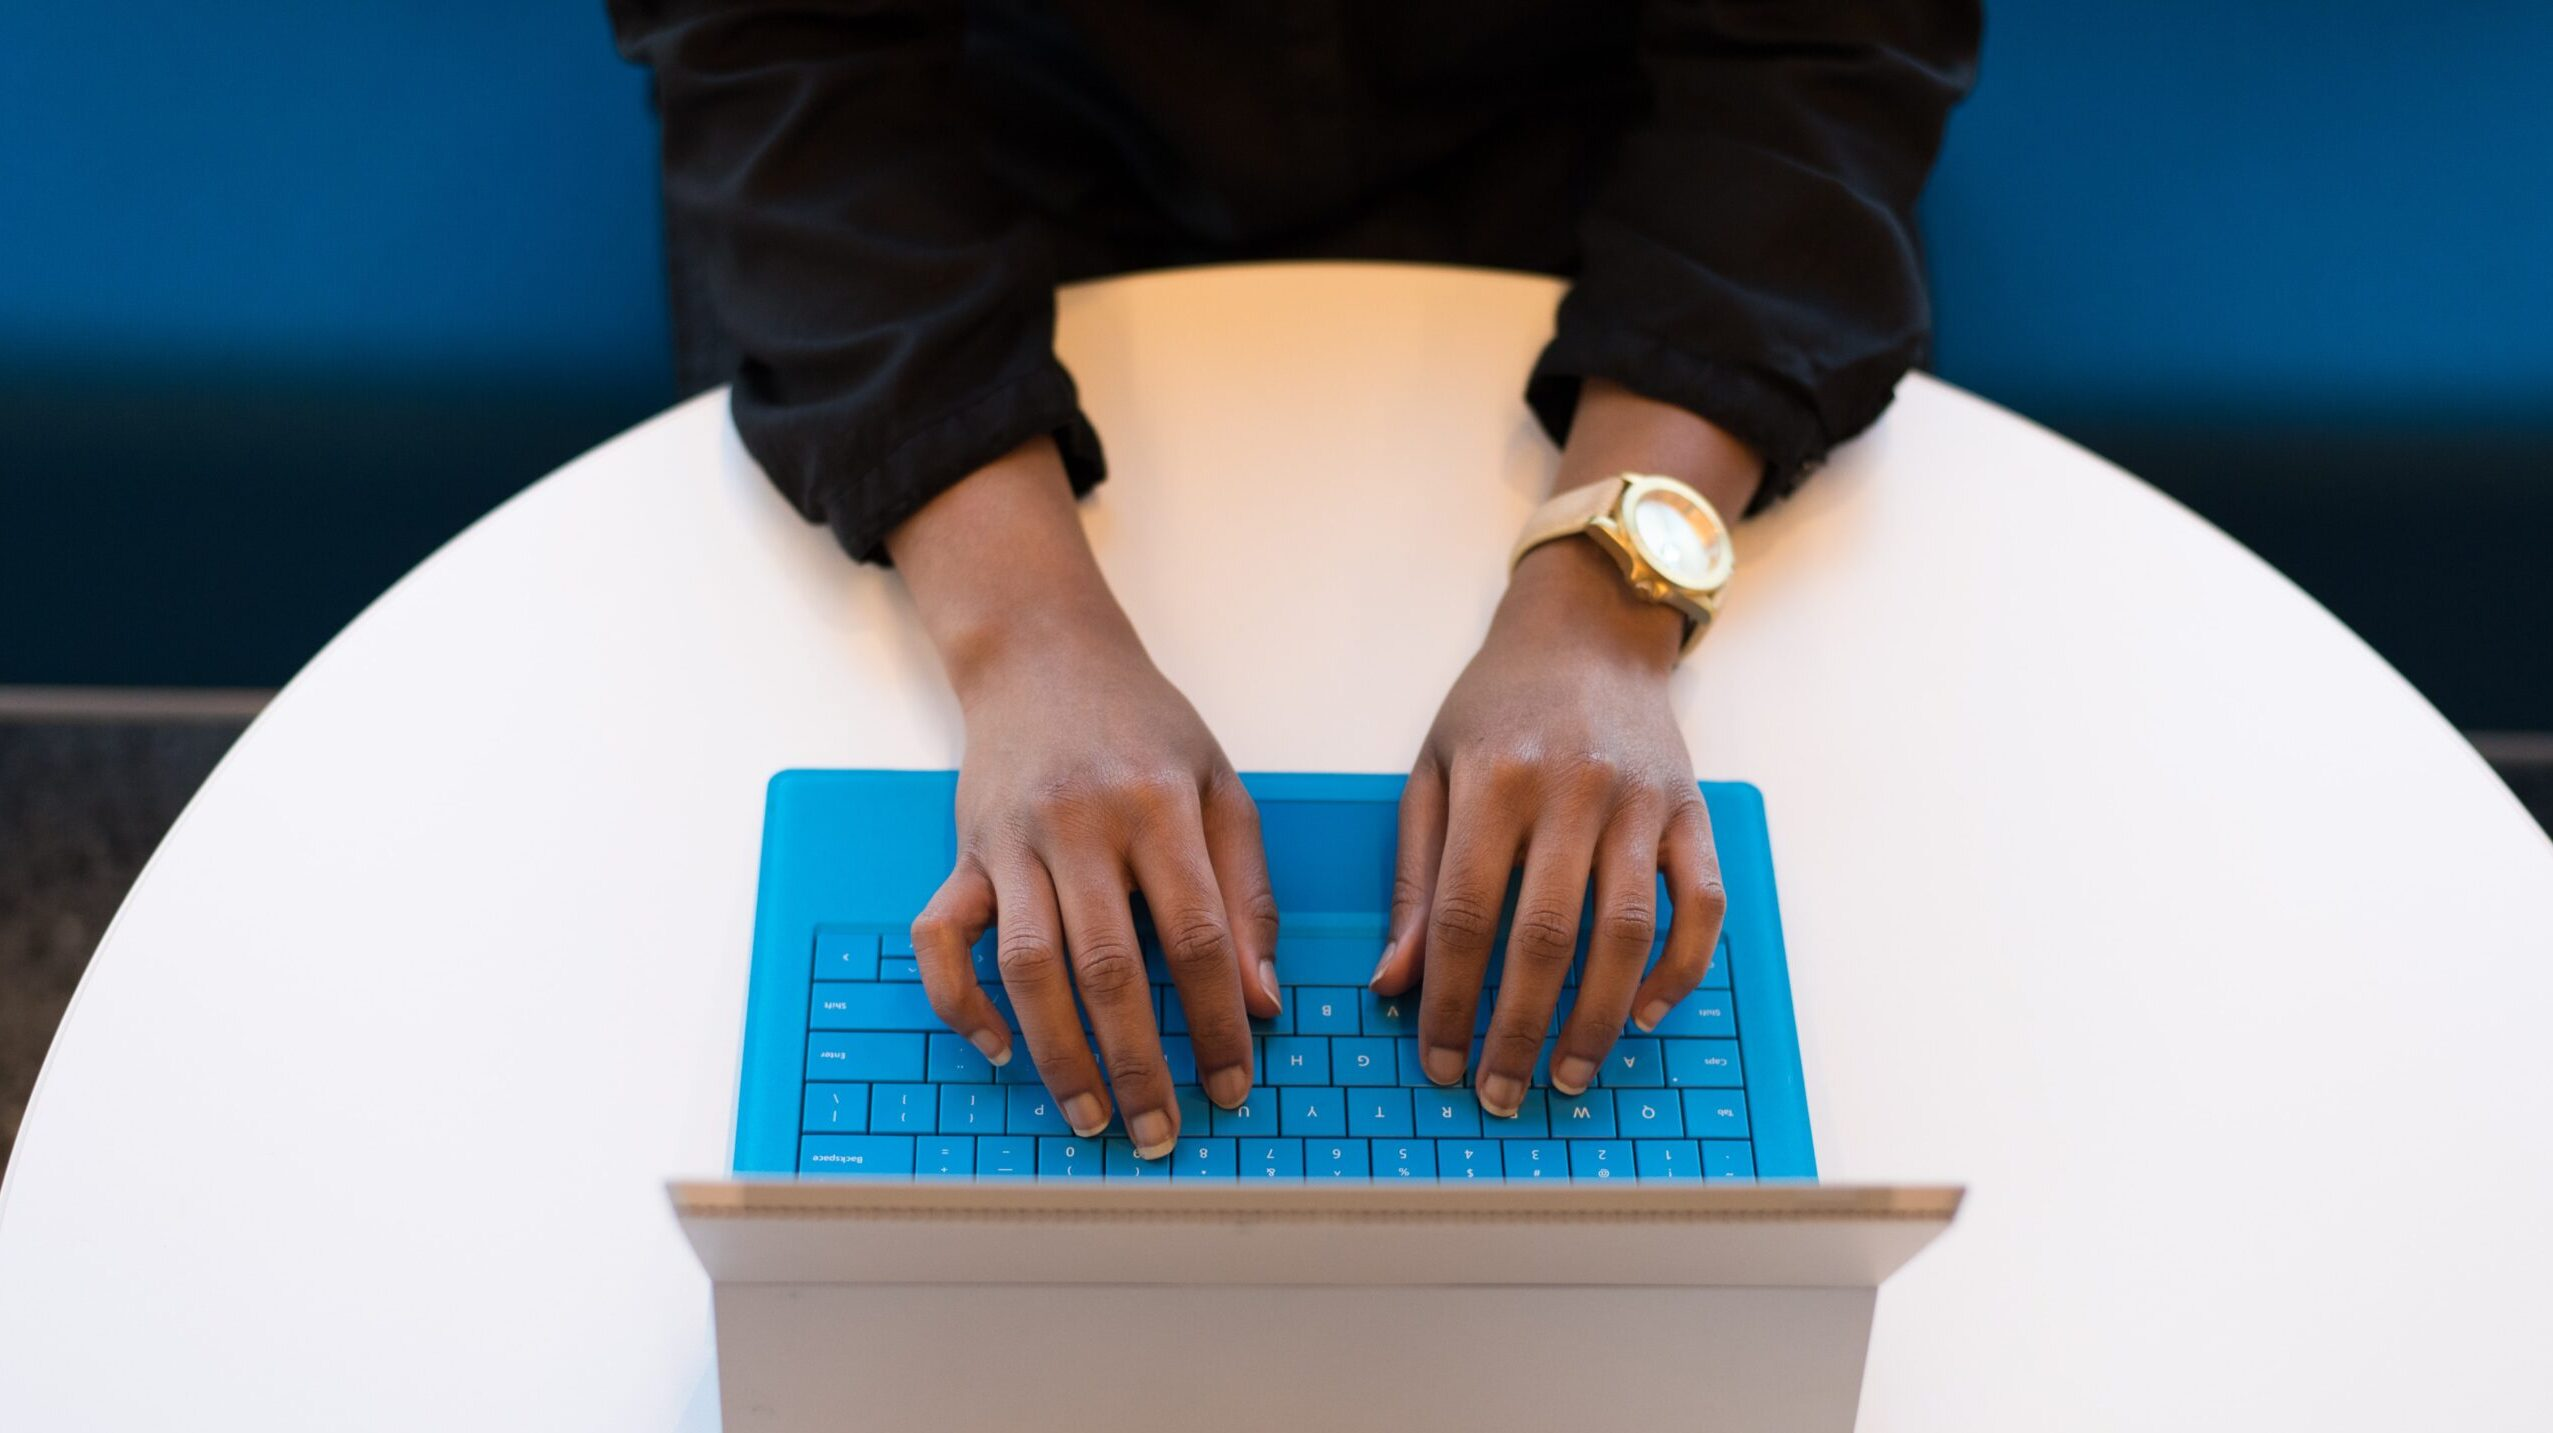 a person seen from above typing on a laptop with a blue keyboard